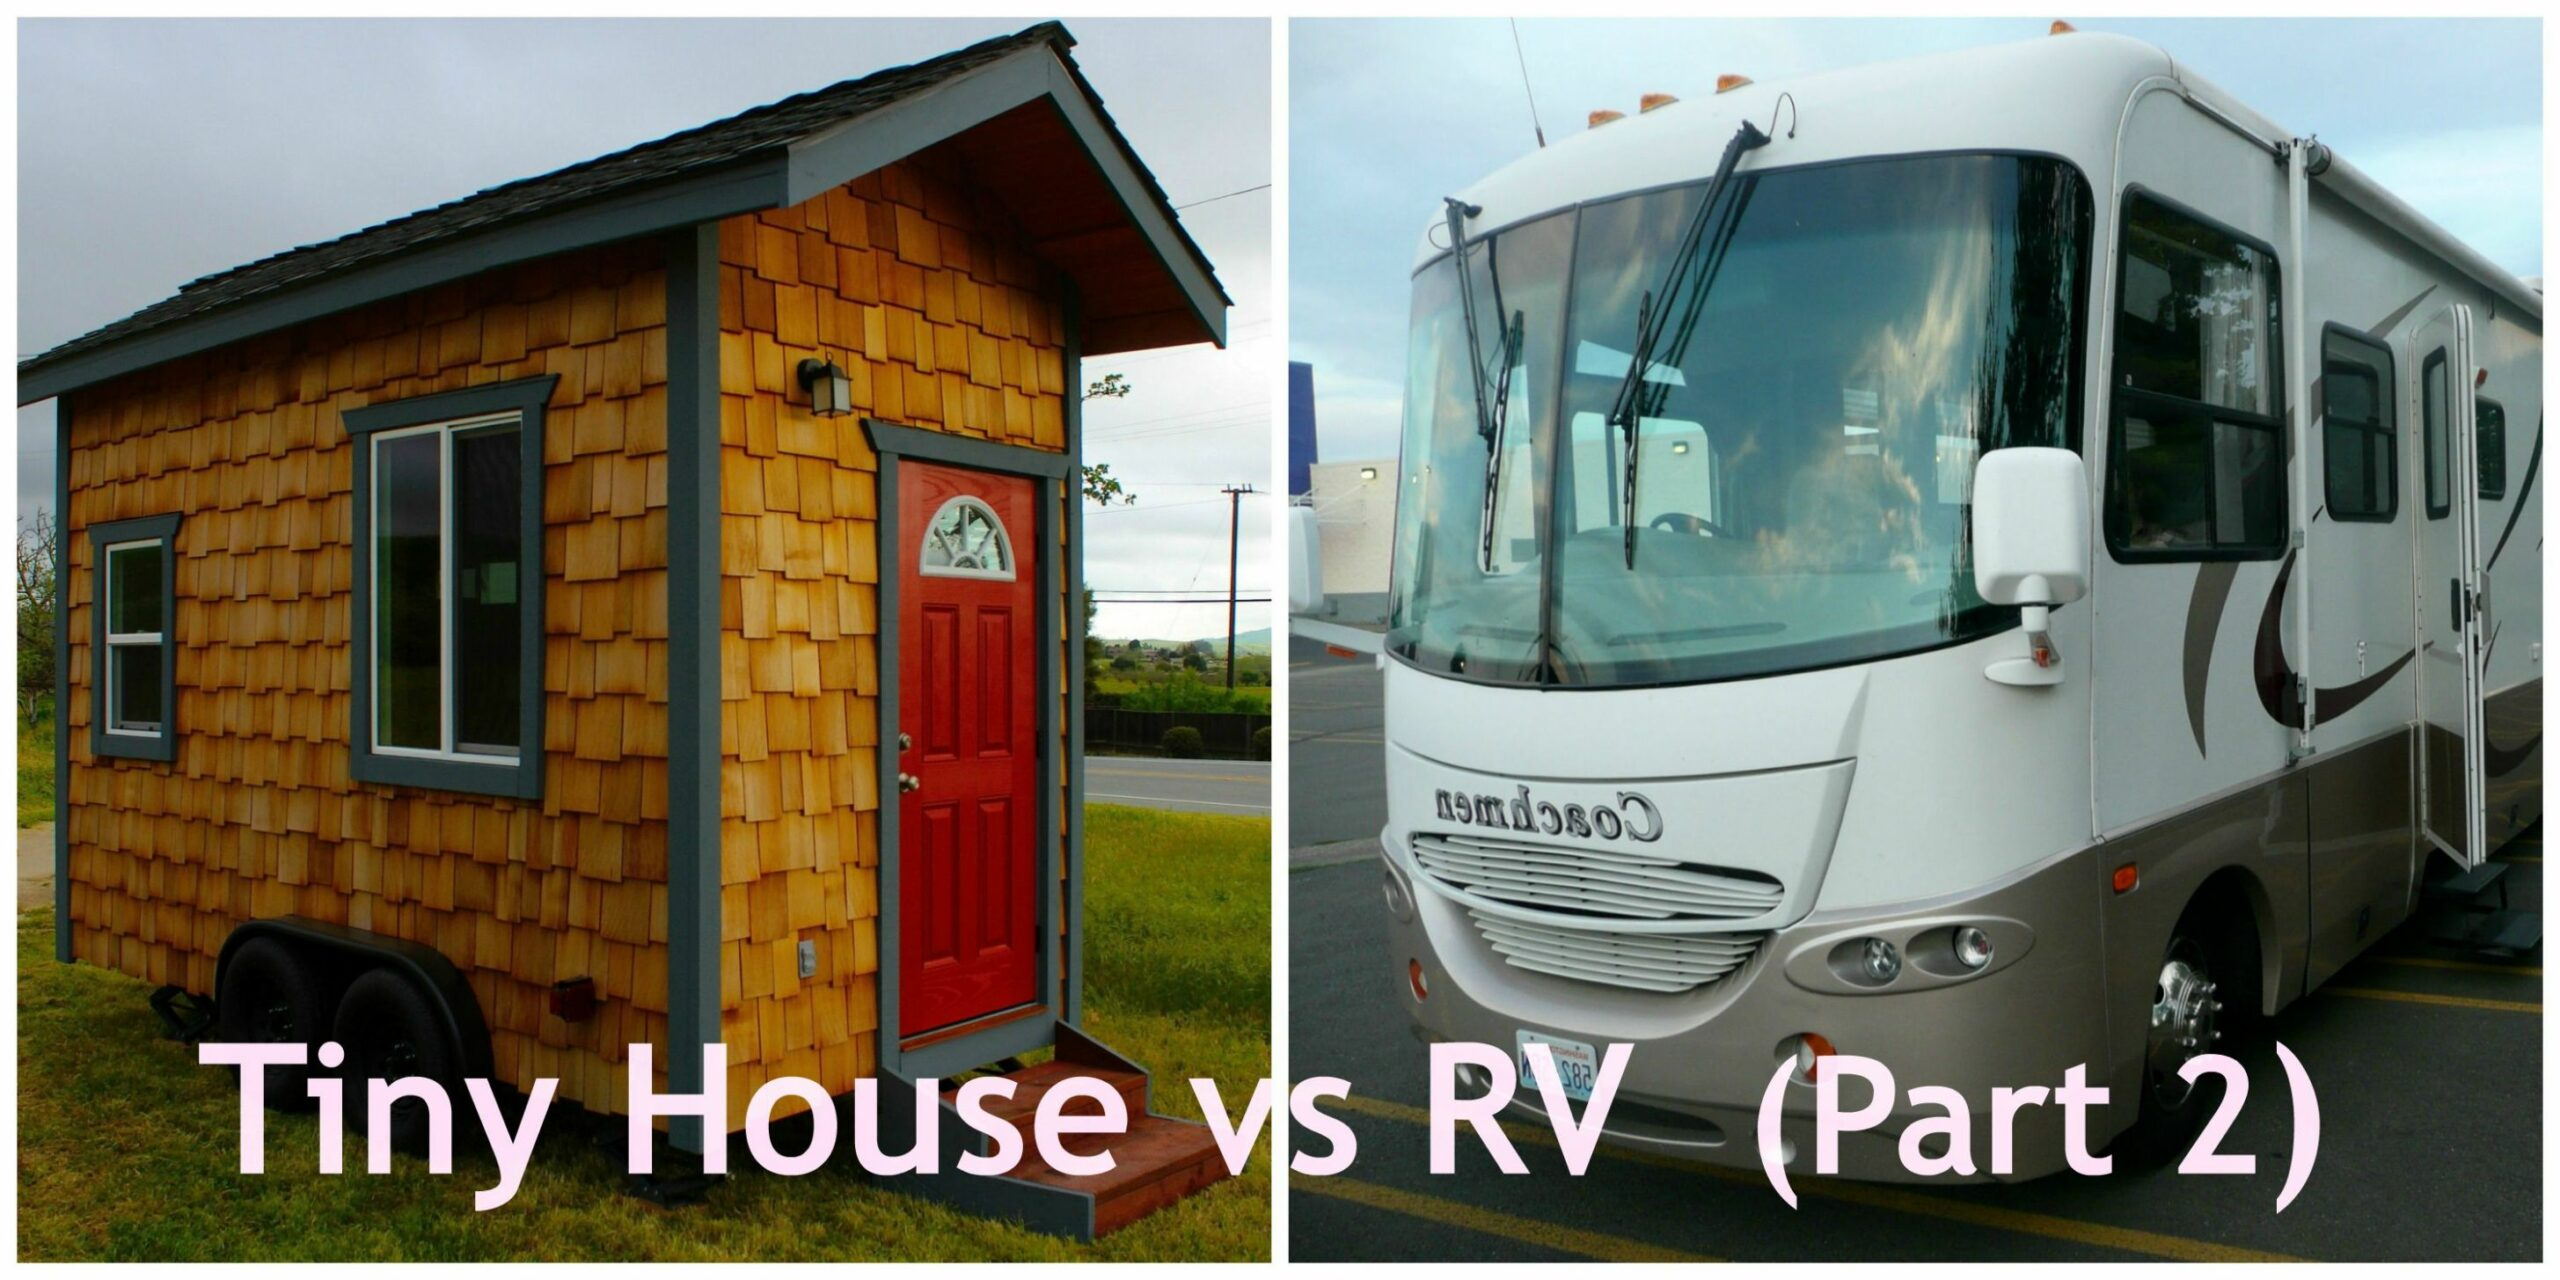 Tiny House vs